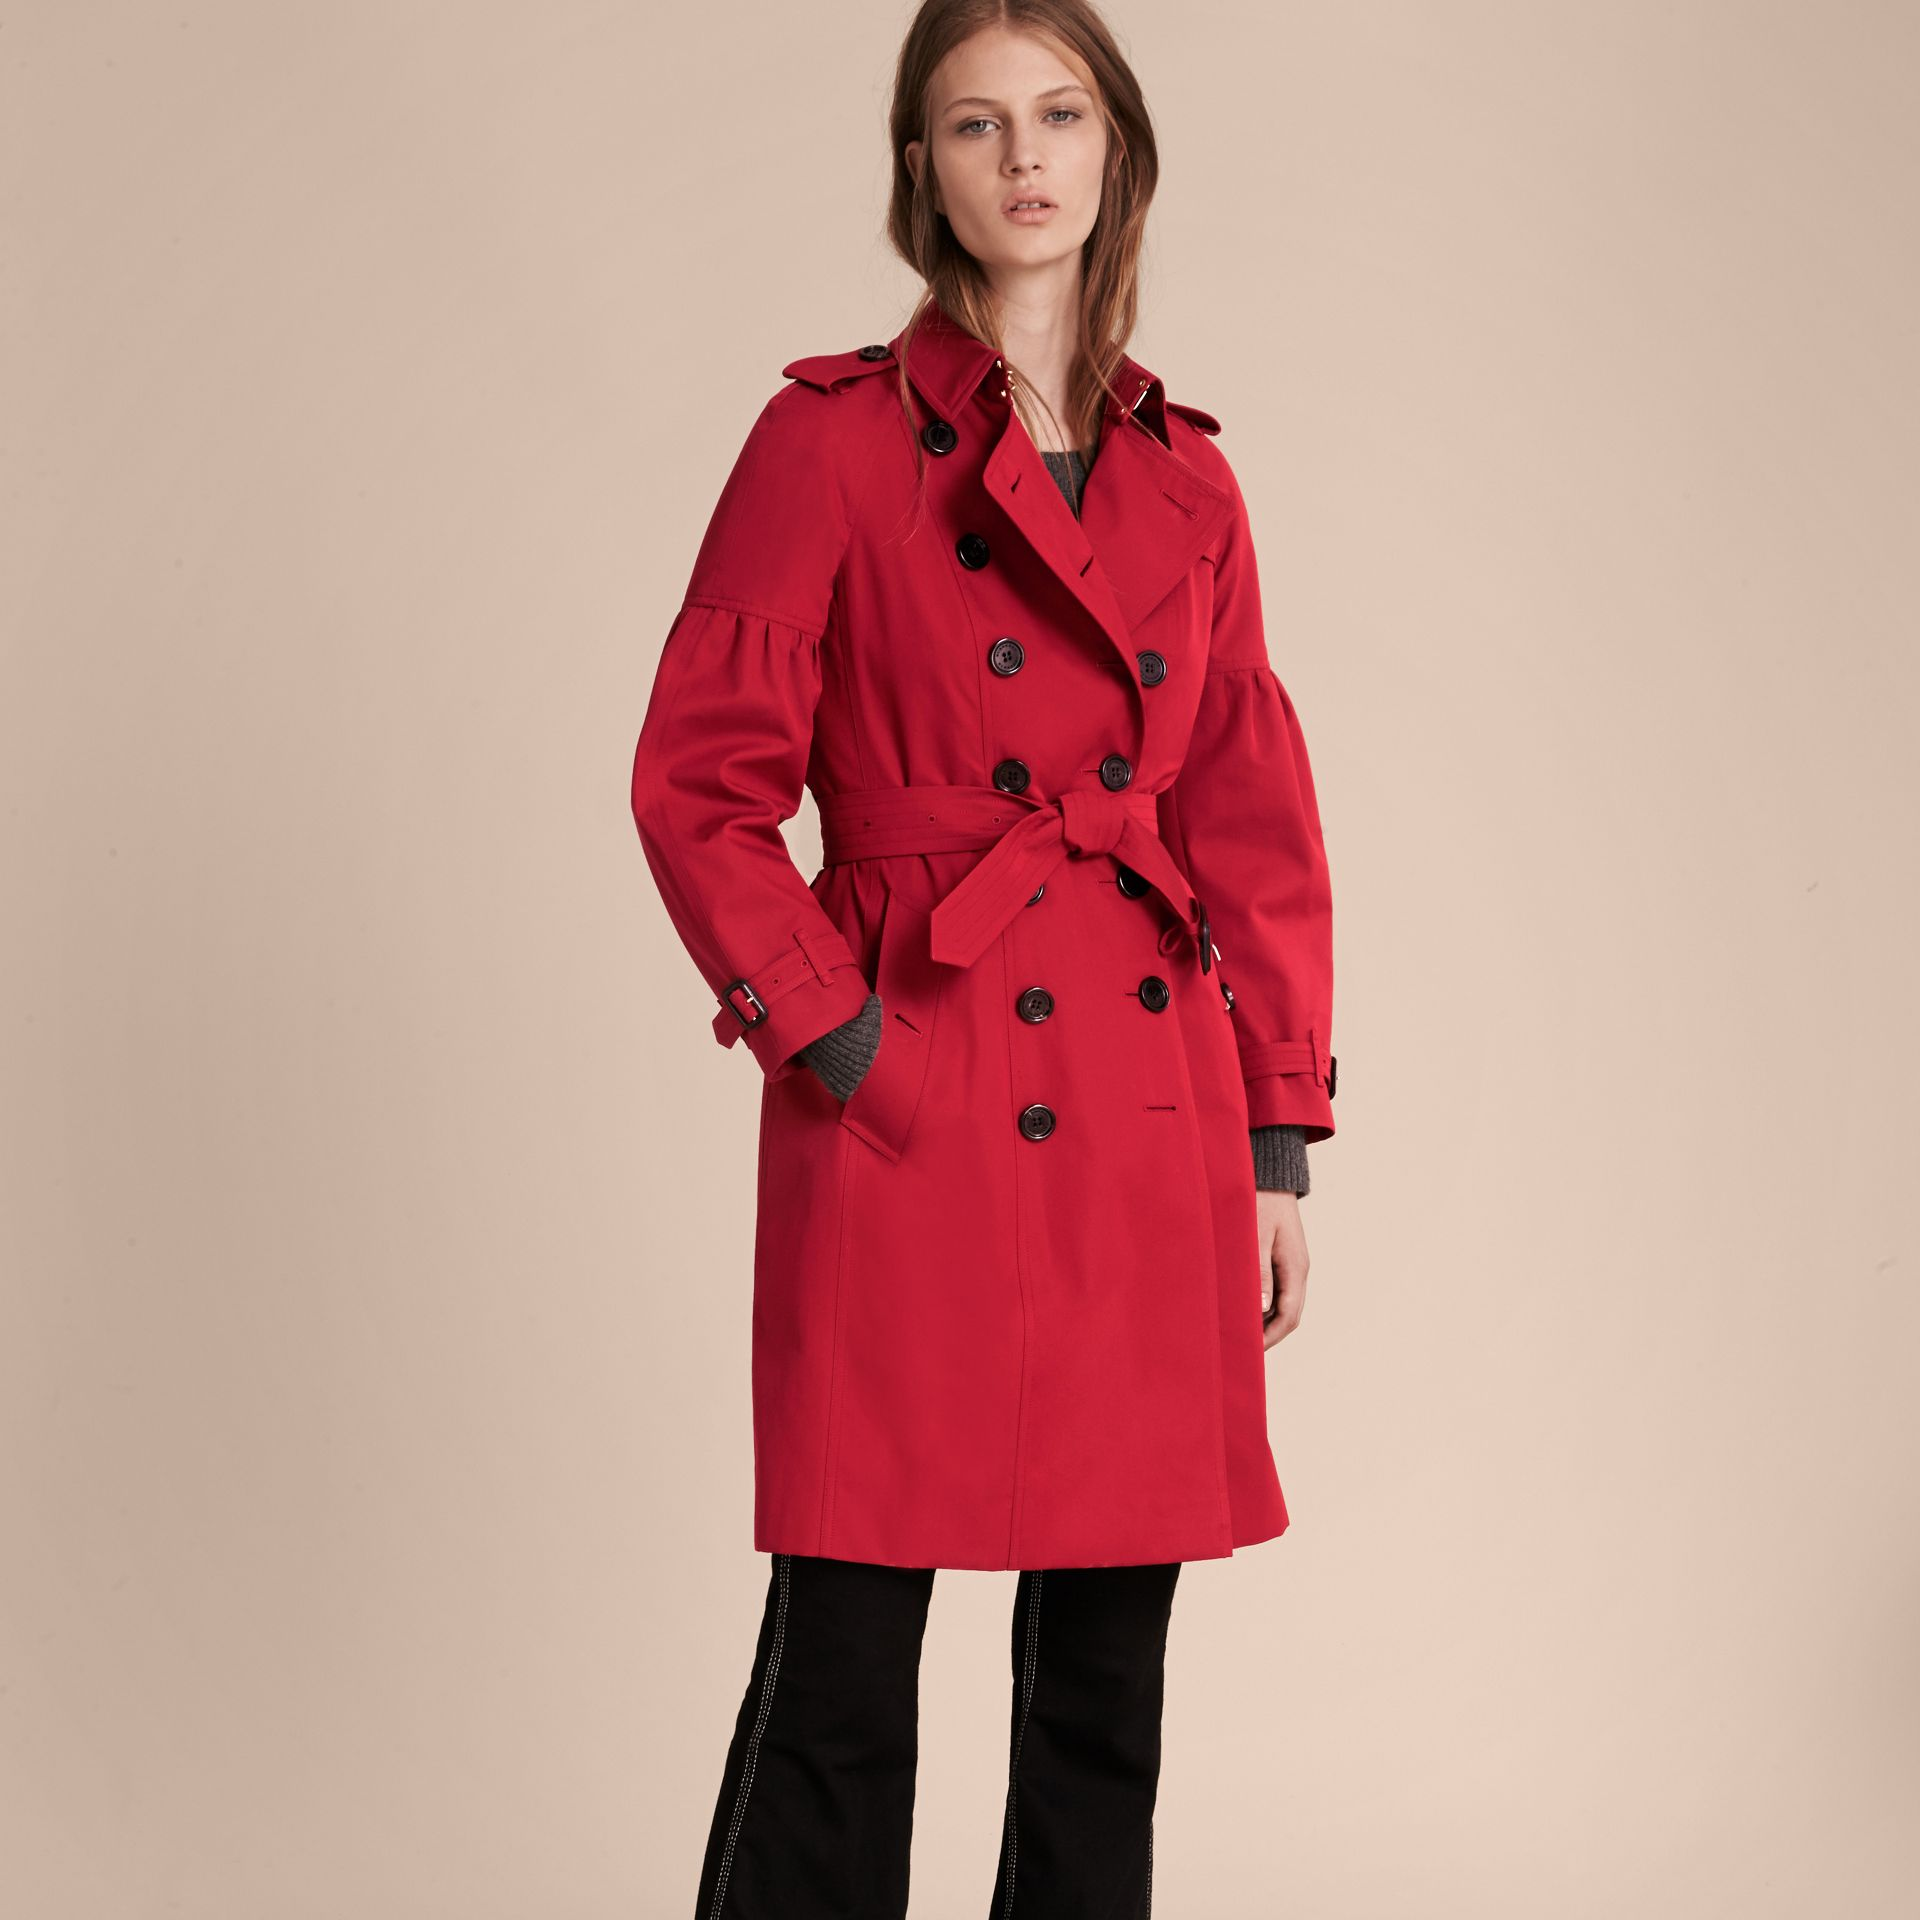 Parade red Cotton Gabardine Trench Coat with Puff Sleeves Parade Red - gallery image 7